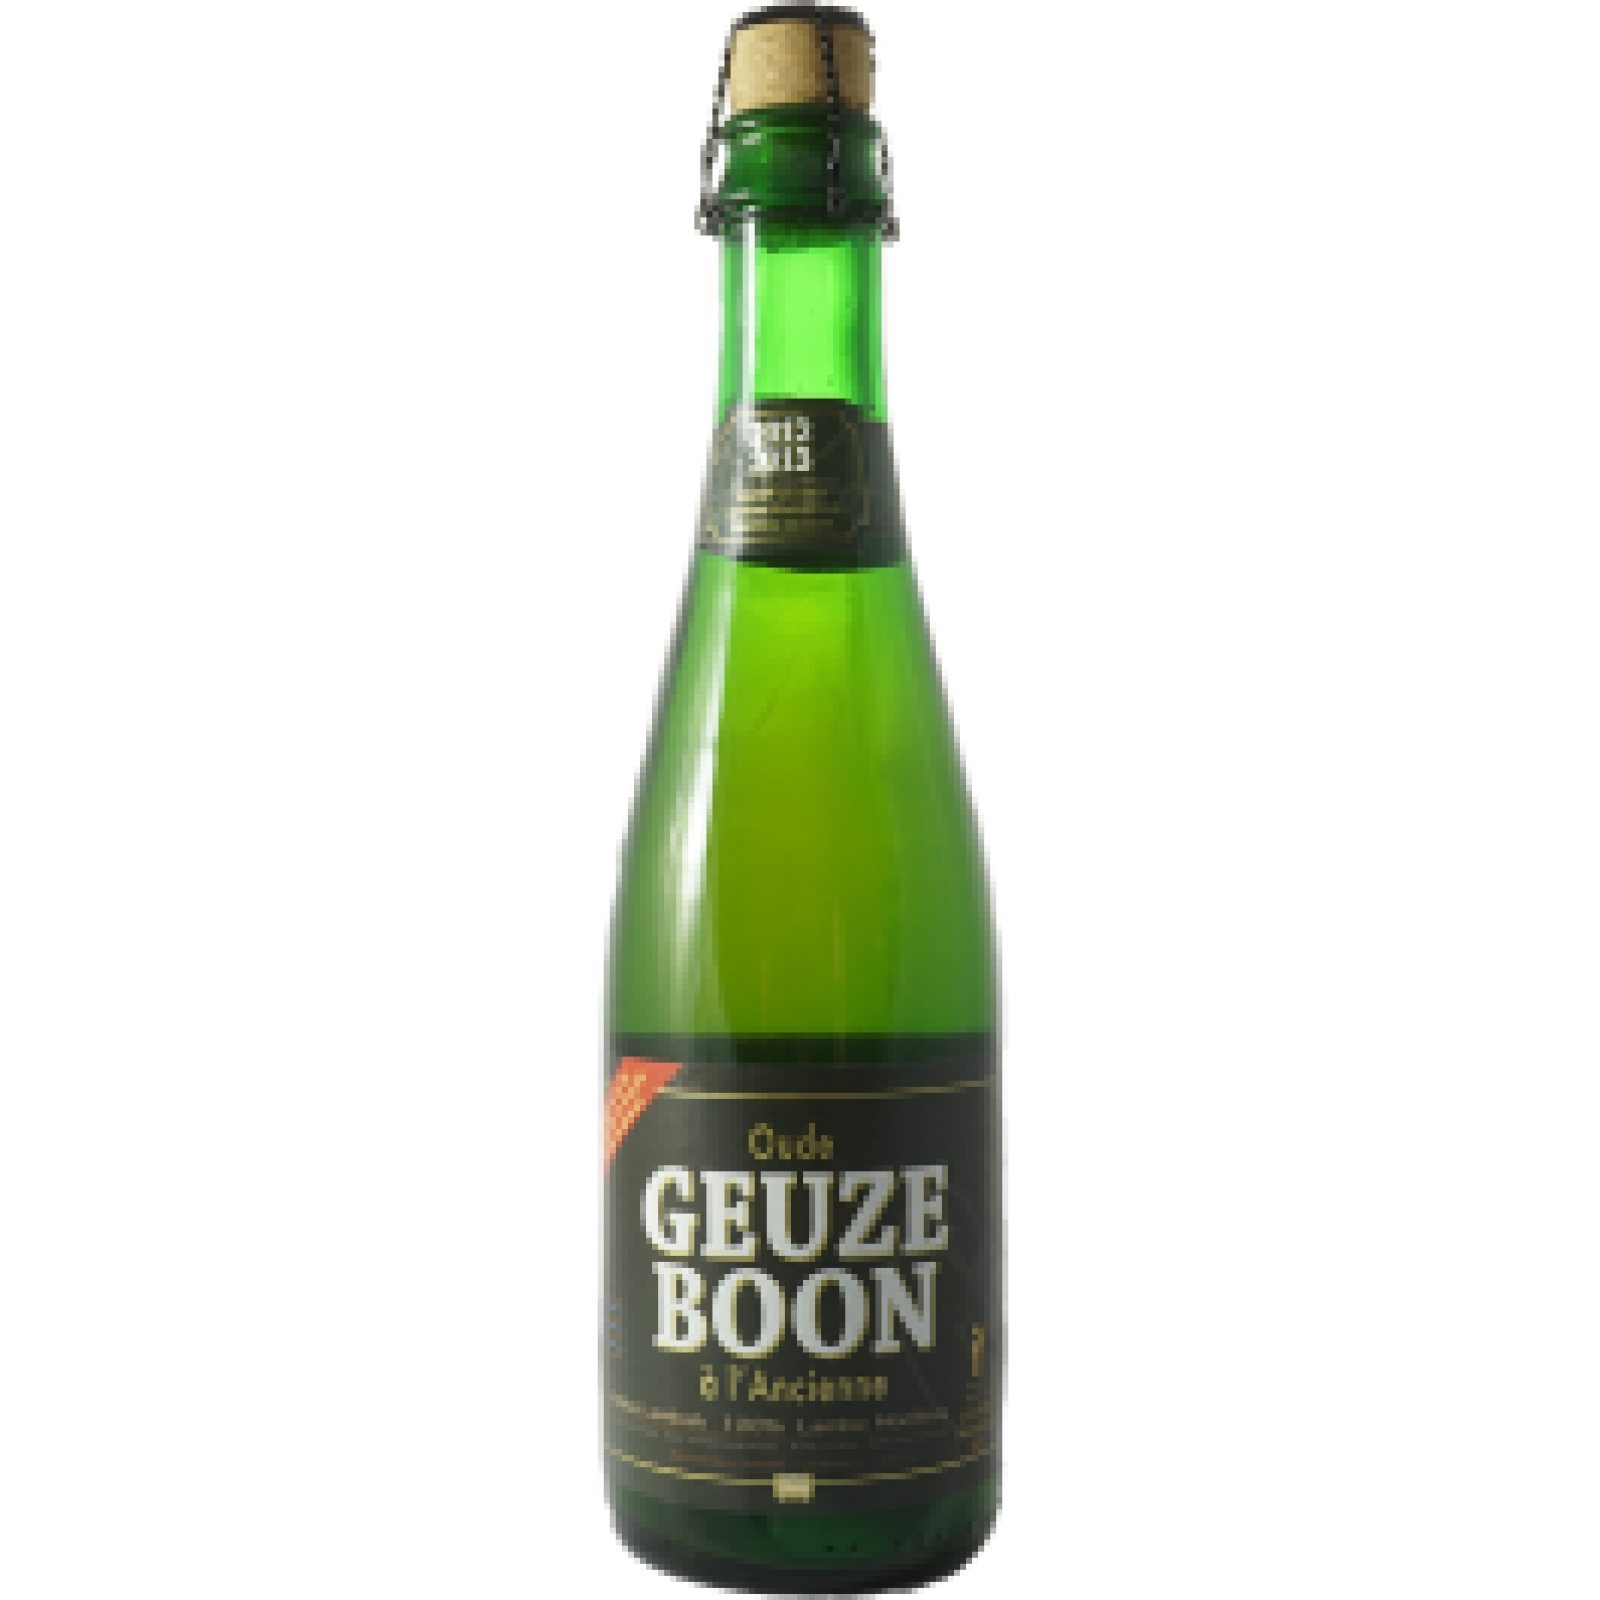 Geuze Boon Lambic, Wild & Sour 7% 375ml Boon Brewery